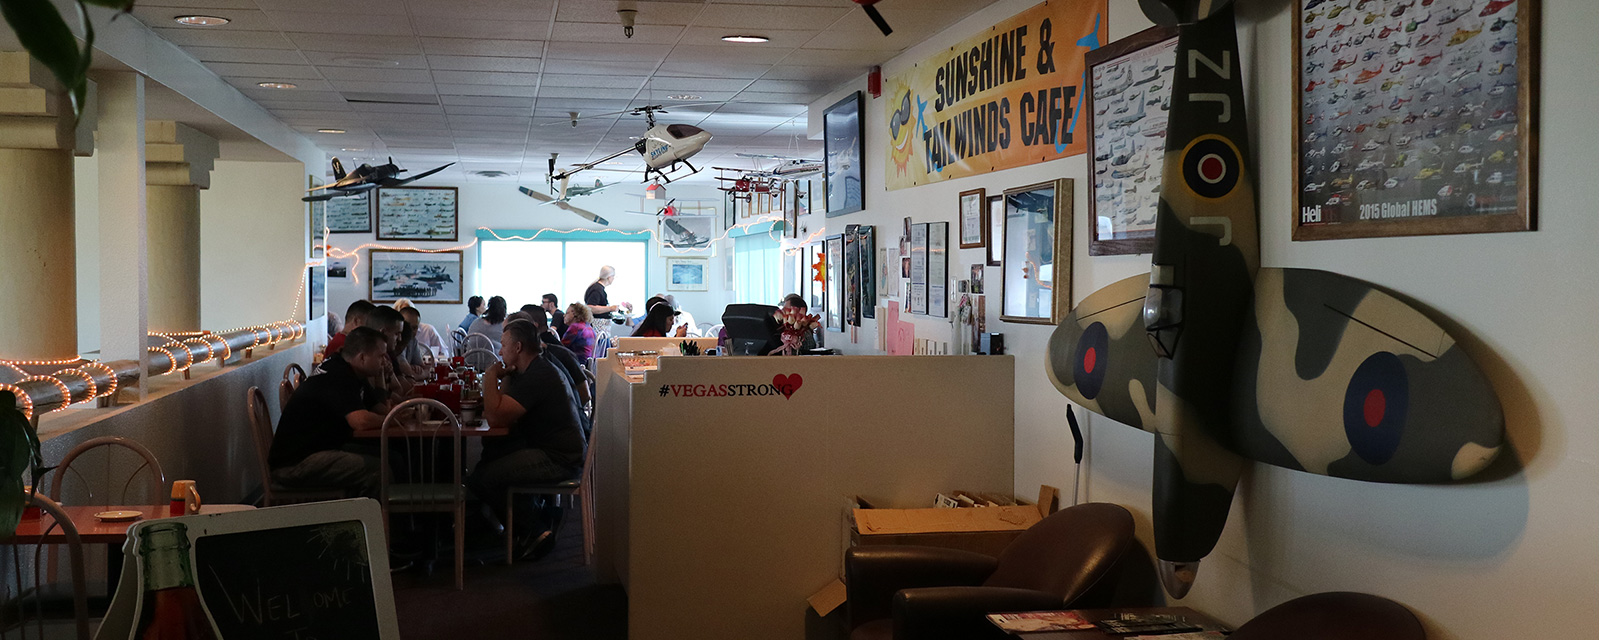 Sunshine And Tailwinds Cafe Will Remain Open During The Remodel Of North Las Vegas Airport Terminal